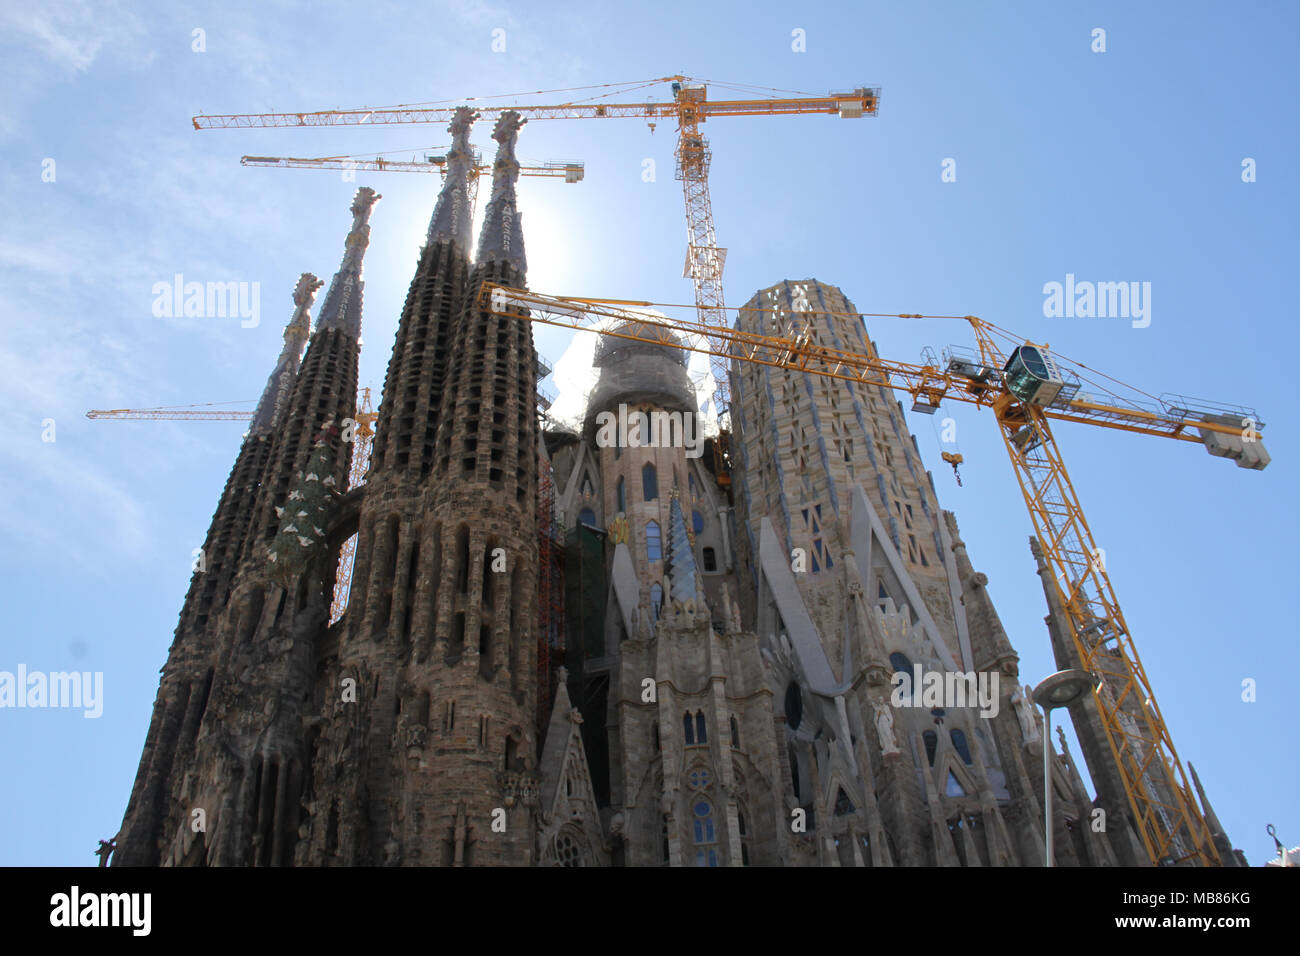 Barcelona, Spain -  28th March, 2018. View of the Sagrada Familia, a UNESCO World Heritage Site by Gaudi. With only eight complete spires out of eighteen, It is anticipated that the building could be completed by 2026—the centenary of Gaudí's death. General view of Barcelona, Spain. @ David Mbiyu/Alamy Live News - Stock Image